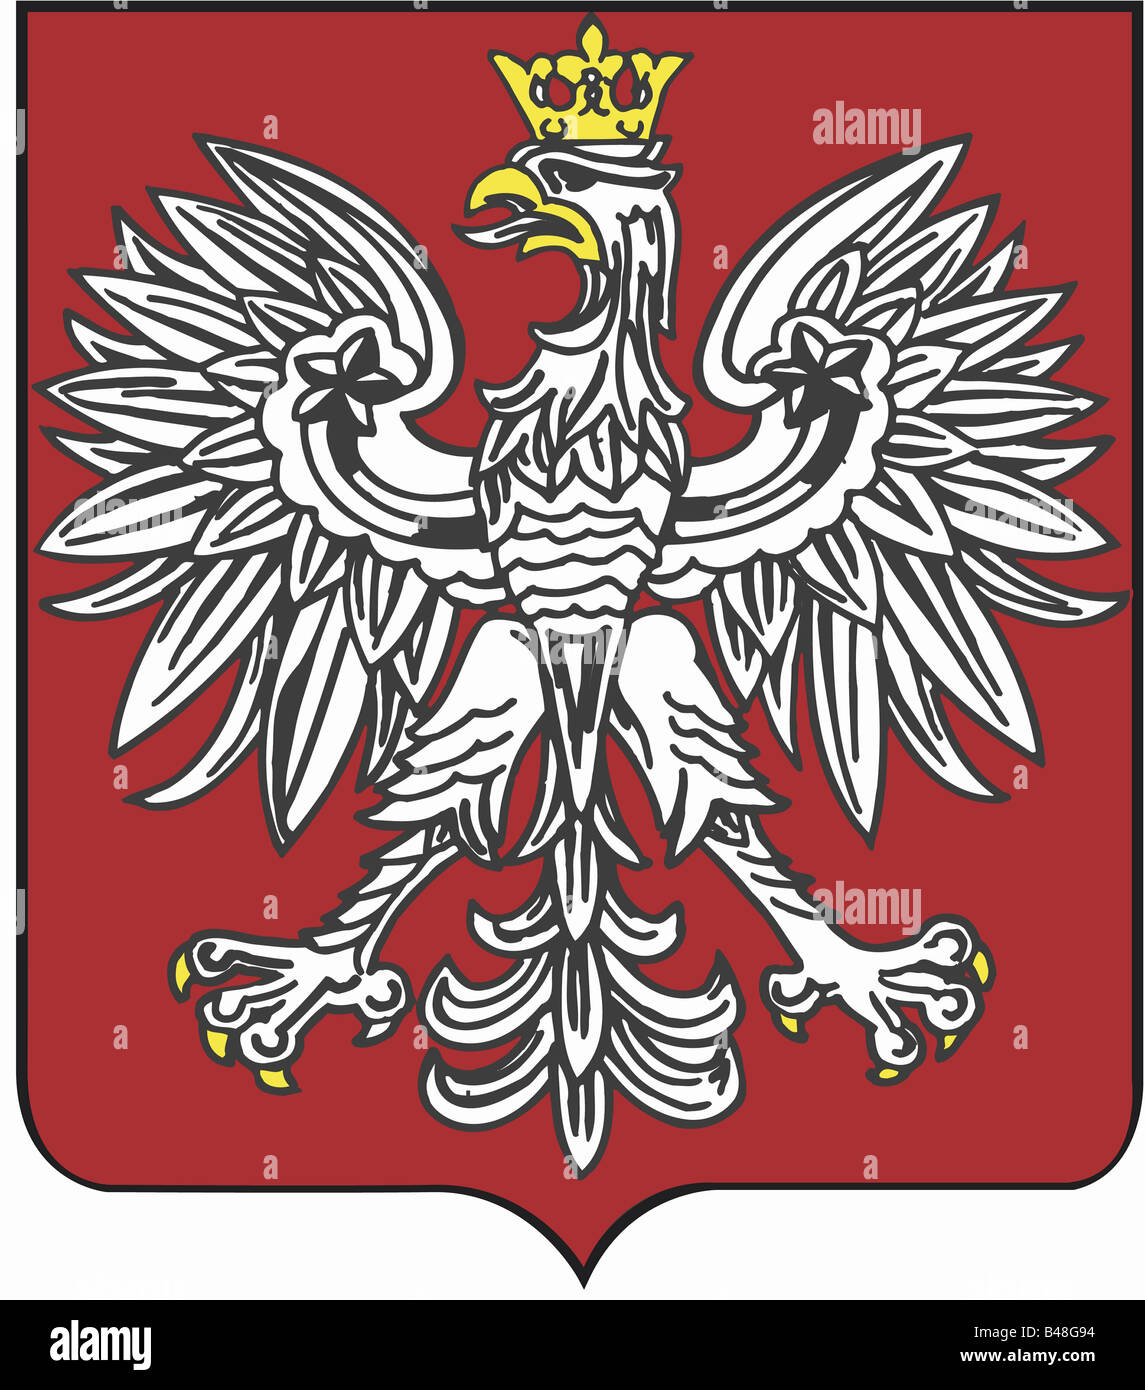 Heraldry Coat Of Arms Poland National Coat Of Arms Symbol Stock